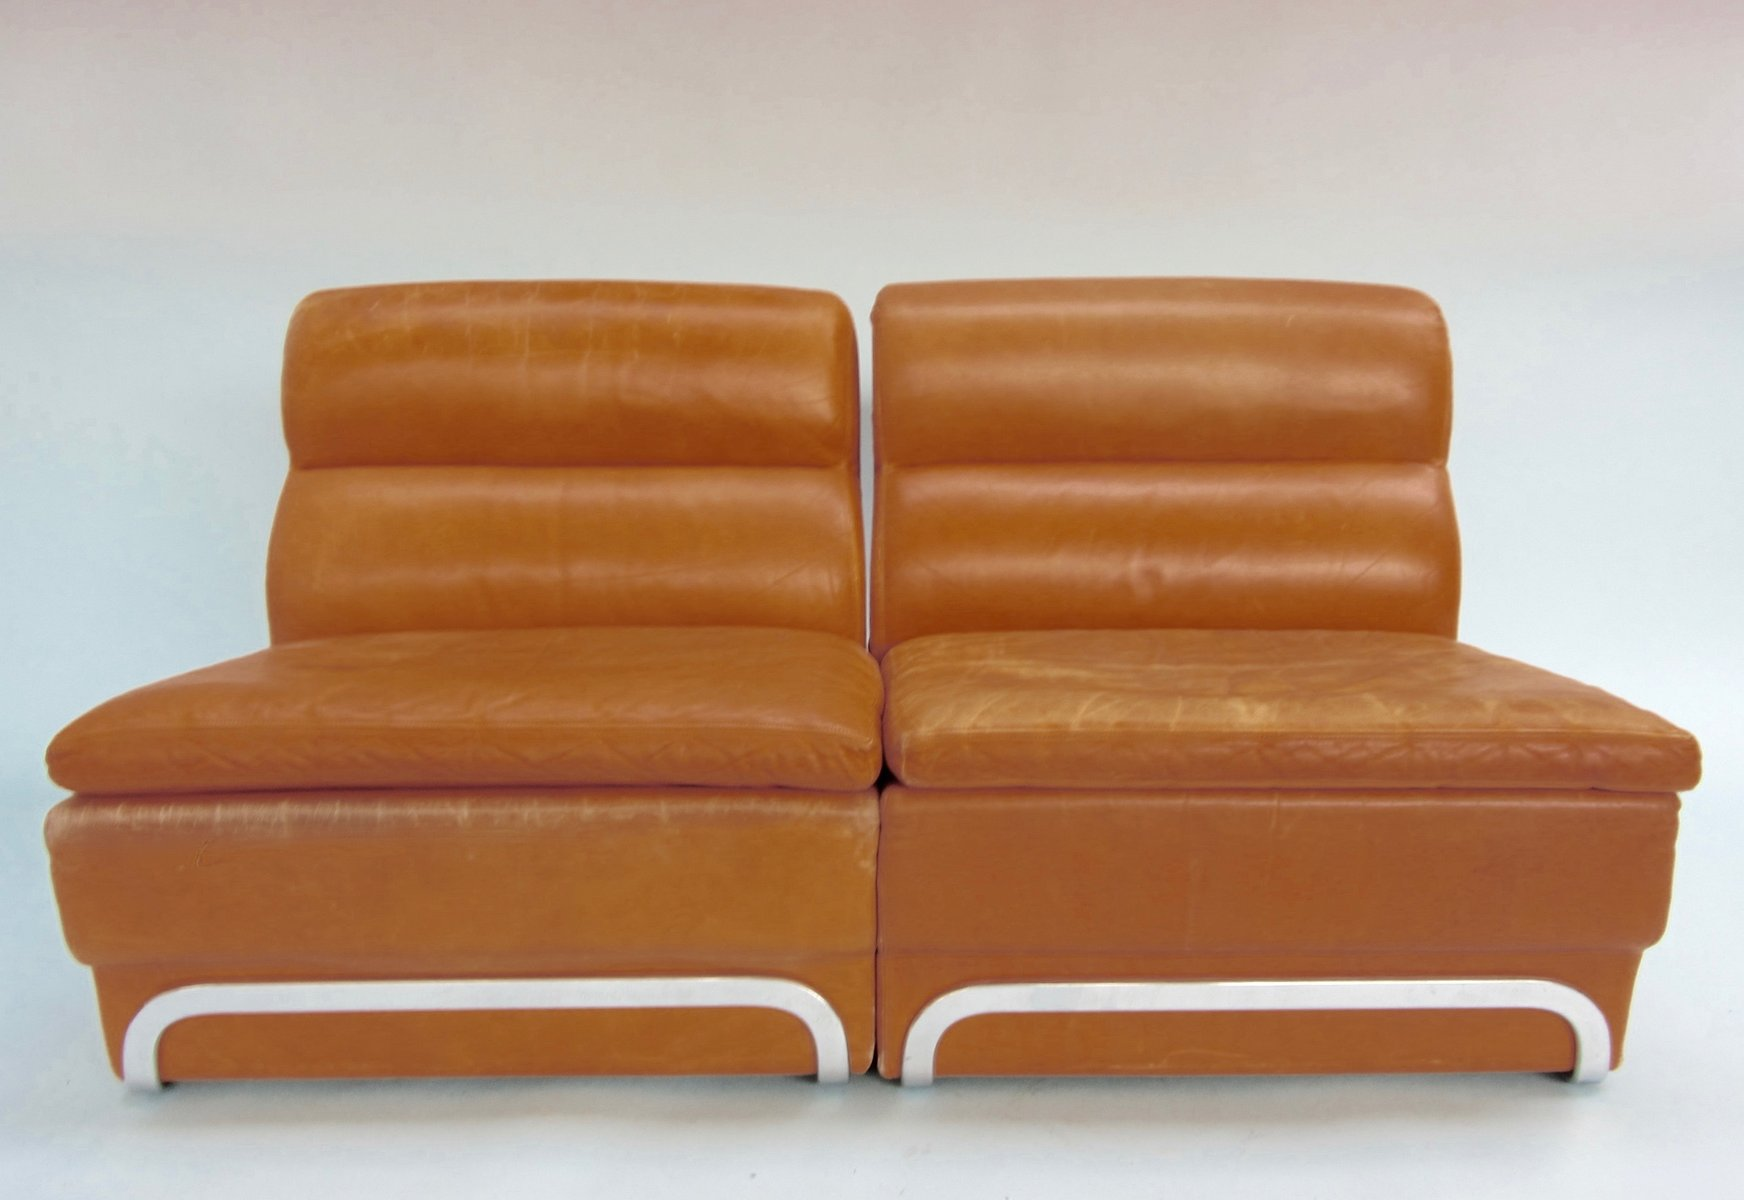 Bettsofa Vintage Vintage Sofa Items By Horst Brüning For Kill International Set Of 2